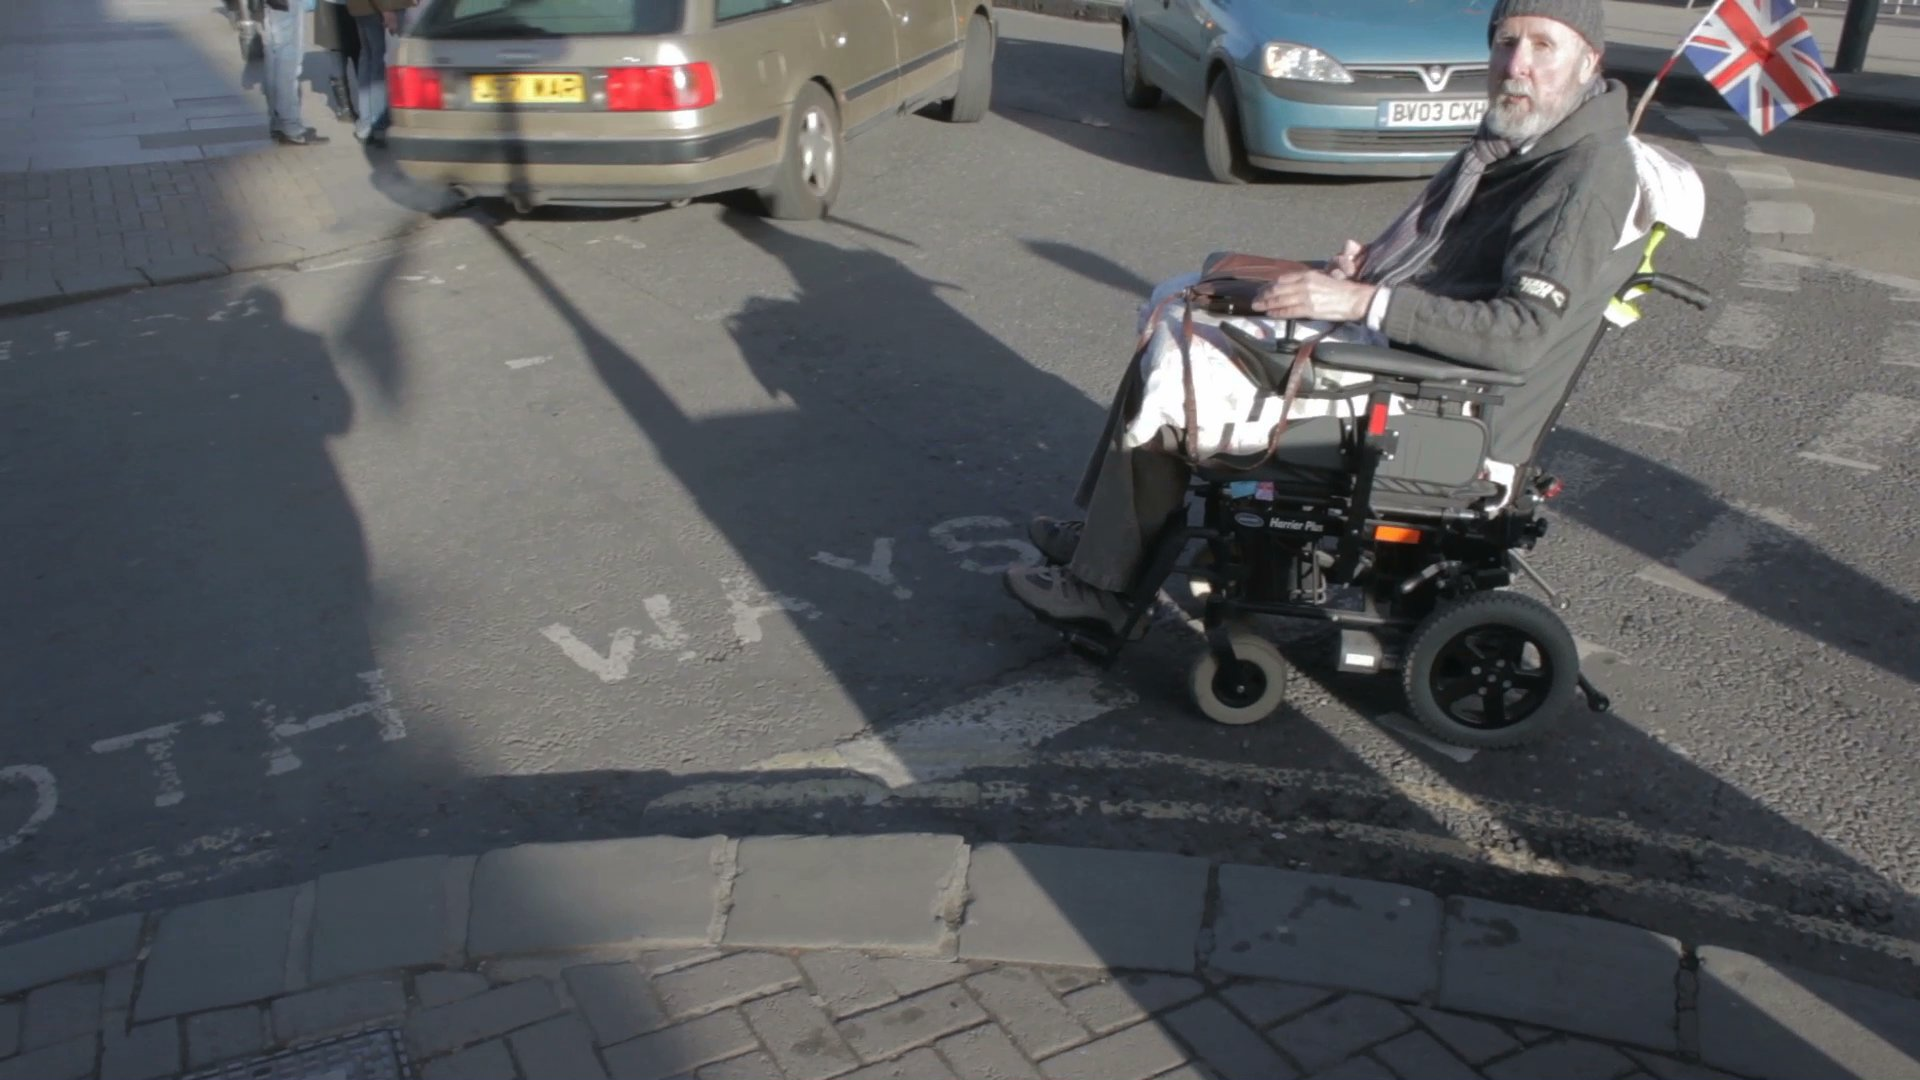 wheelchair height where to buy chair covers nz footway width quality and on grove st mean users need use the road